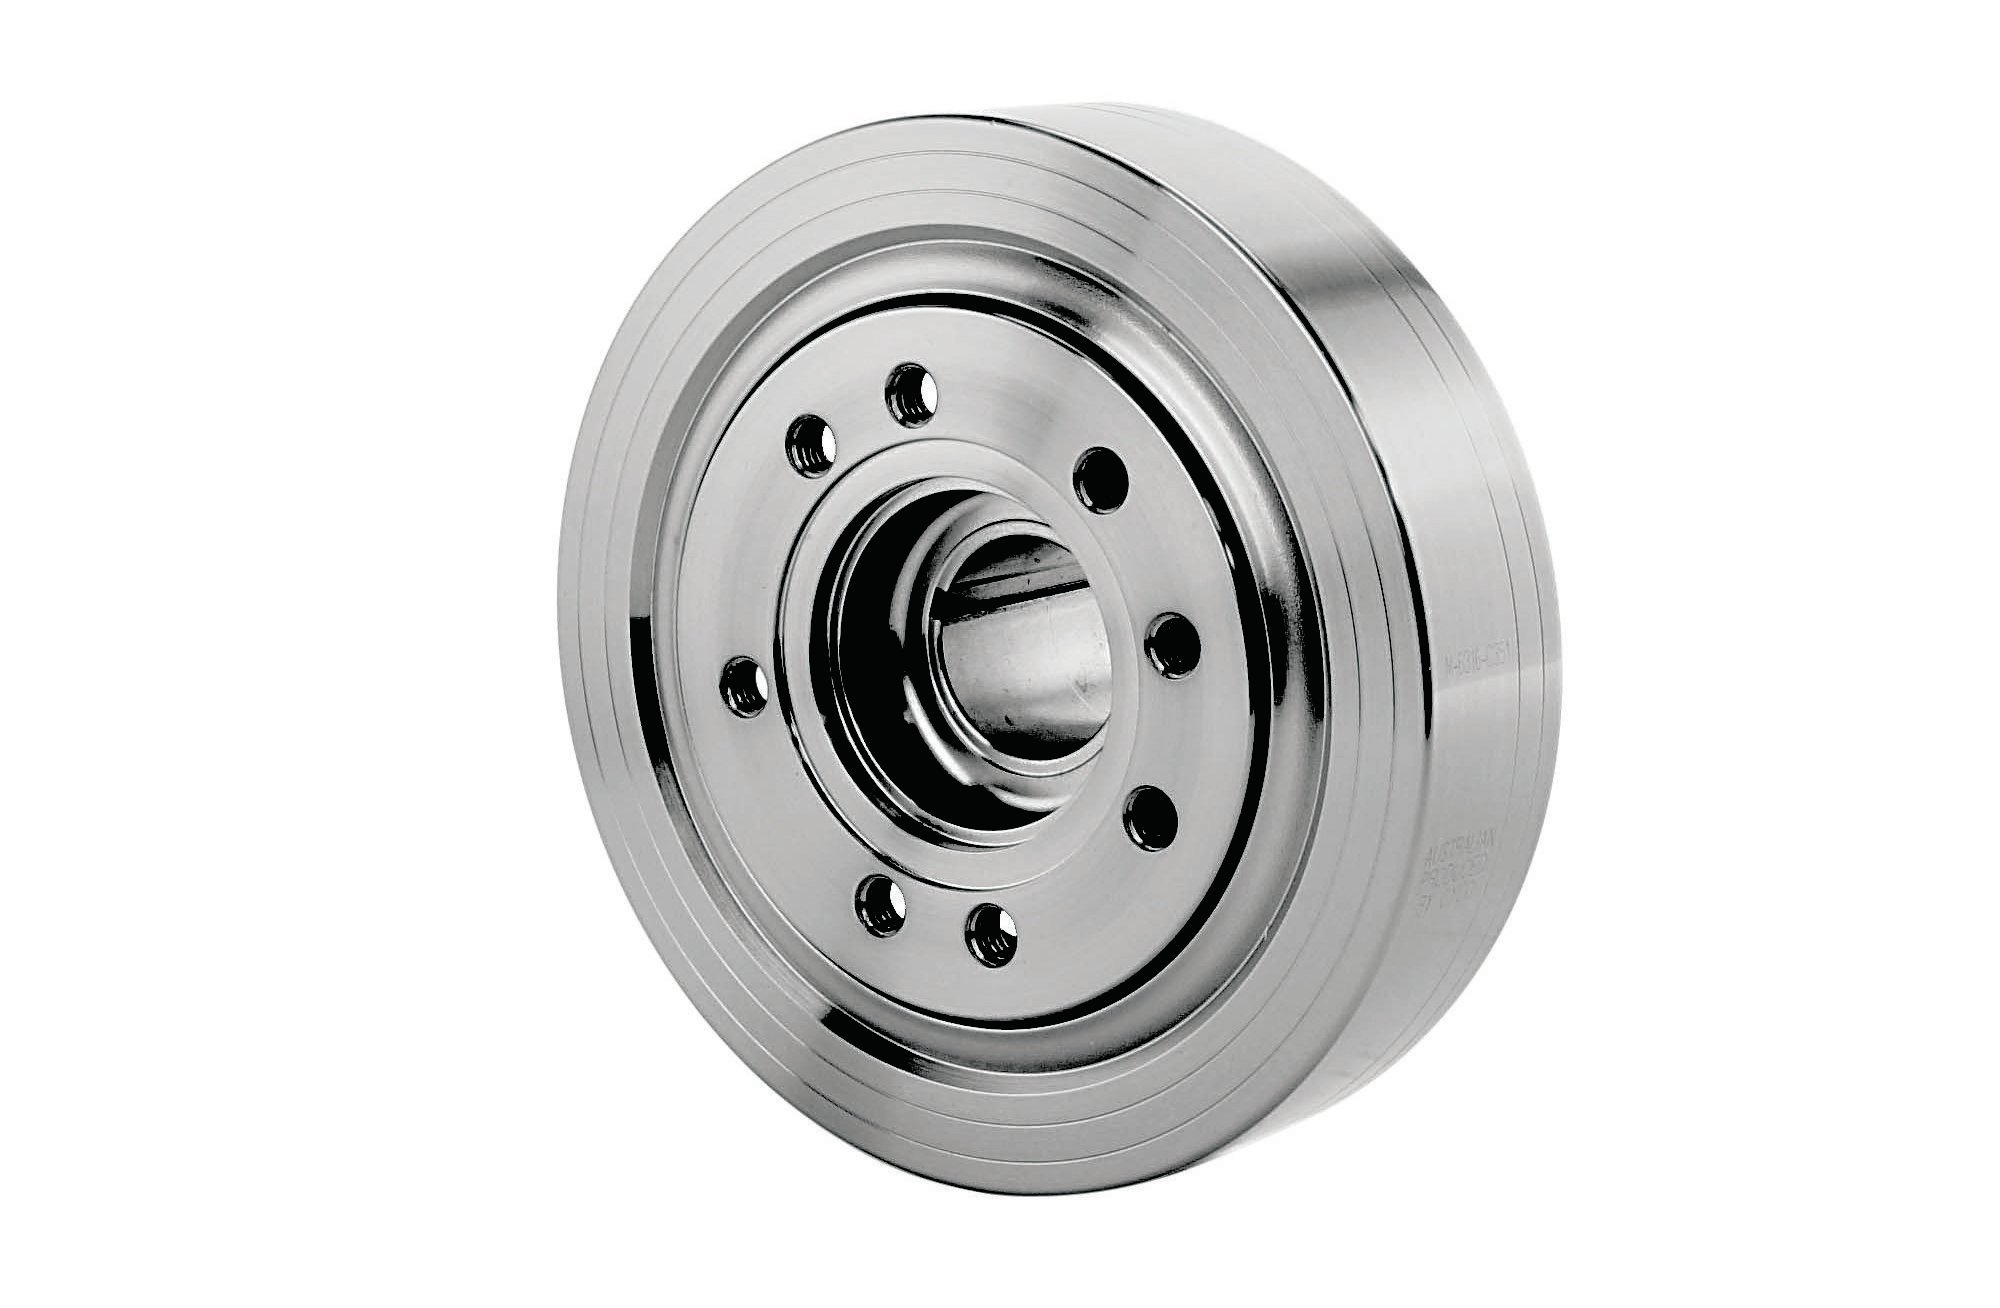 Ford Racing's SFI 18.1-certified damper PN M-6316-C351 has a 28.2 oz-in bolt-on imbalance weight. Removing the weight allows it to also work with neutral-balanced custom cranks. Additional universal features include both passenger-side 11 o'clock and driver-side 2 o'clock timing marks.